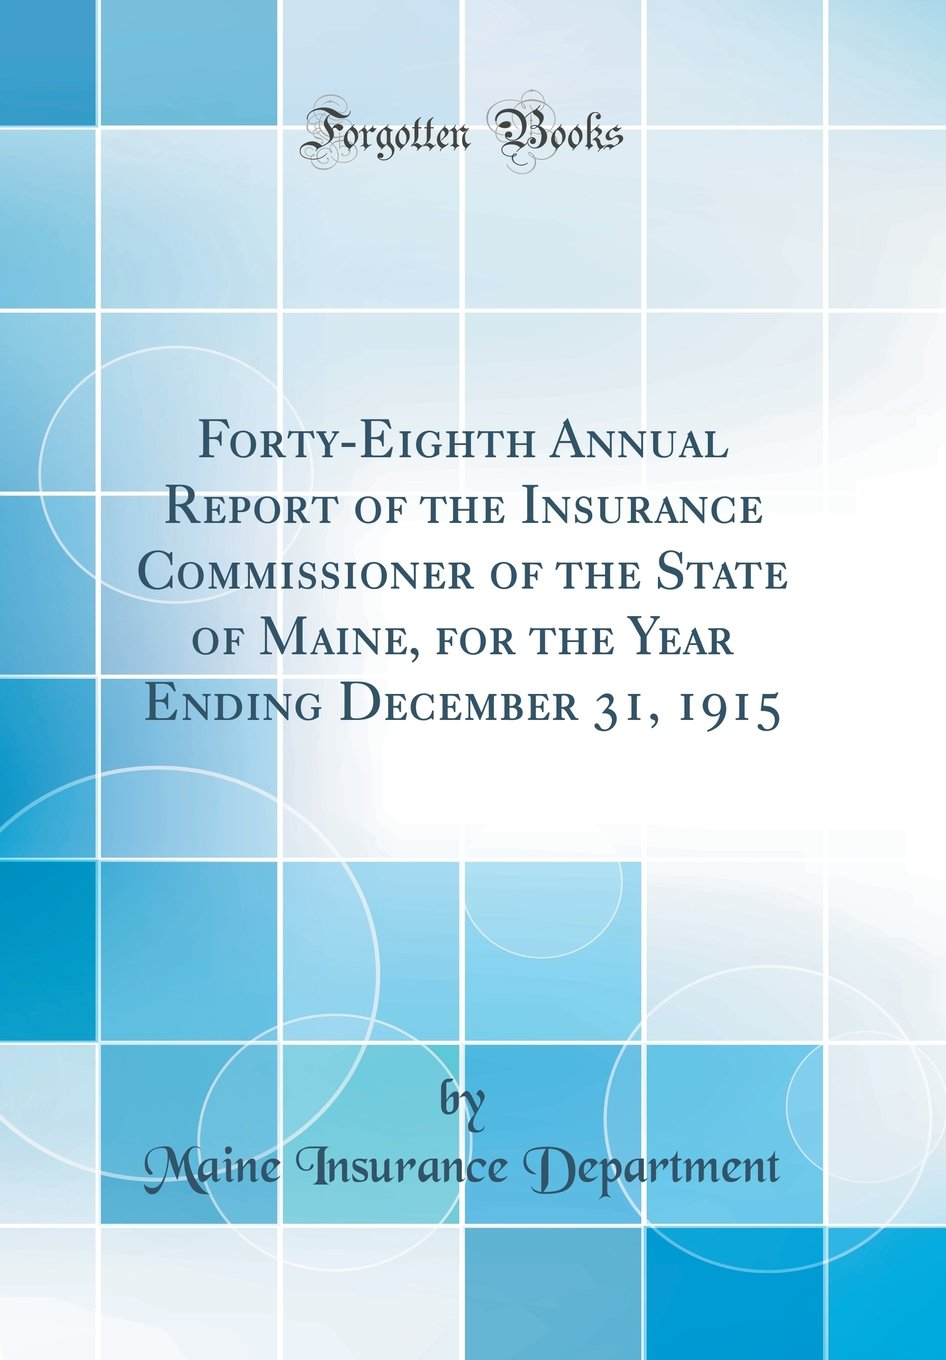 Forty-Eighth Annual Report of the Insurance Commissioner of the State of Maine, for the Year Ending December 31, 1915 (Classic Reprint) ebook